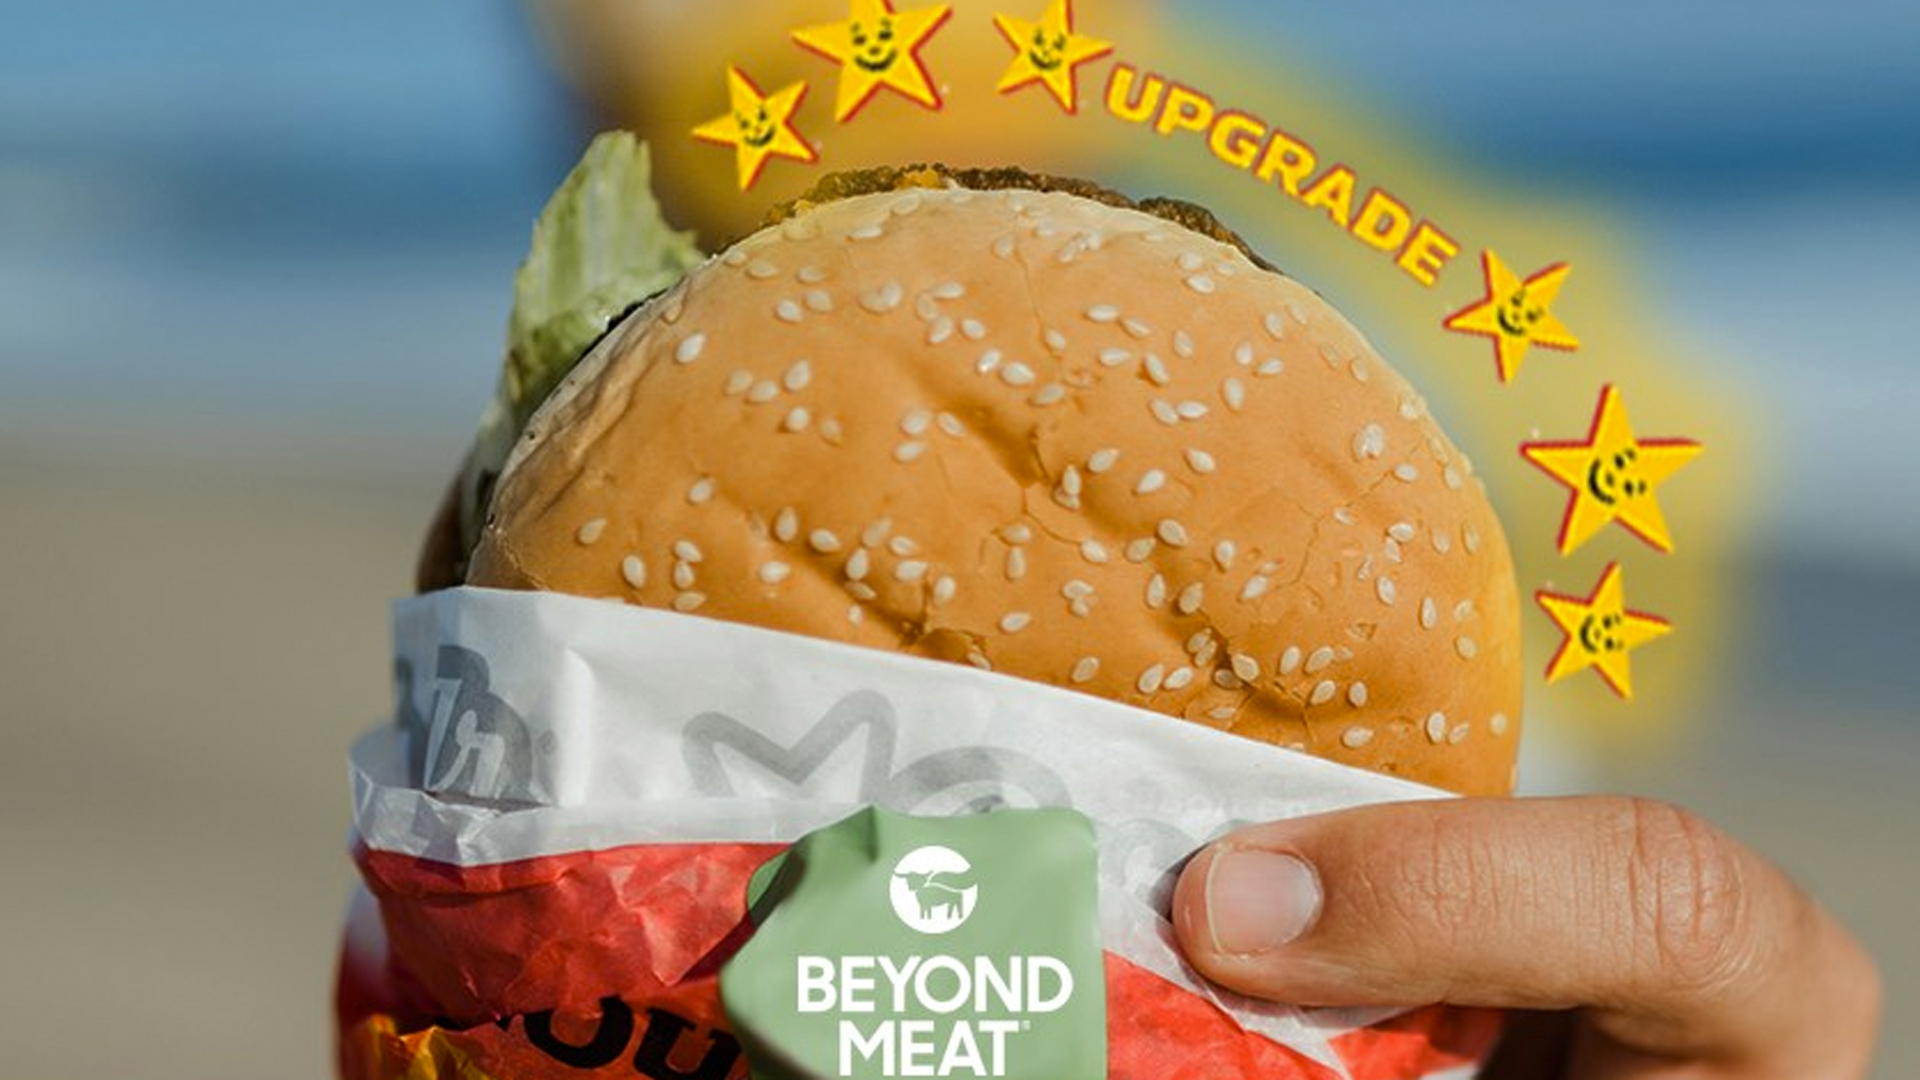 The Carl's Jr. Beyond Famous Star is seen in an image posted to the company's Facebook page.